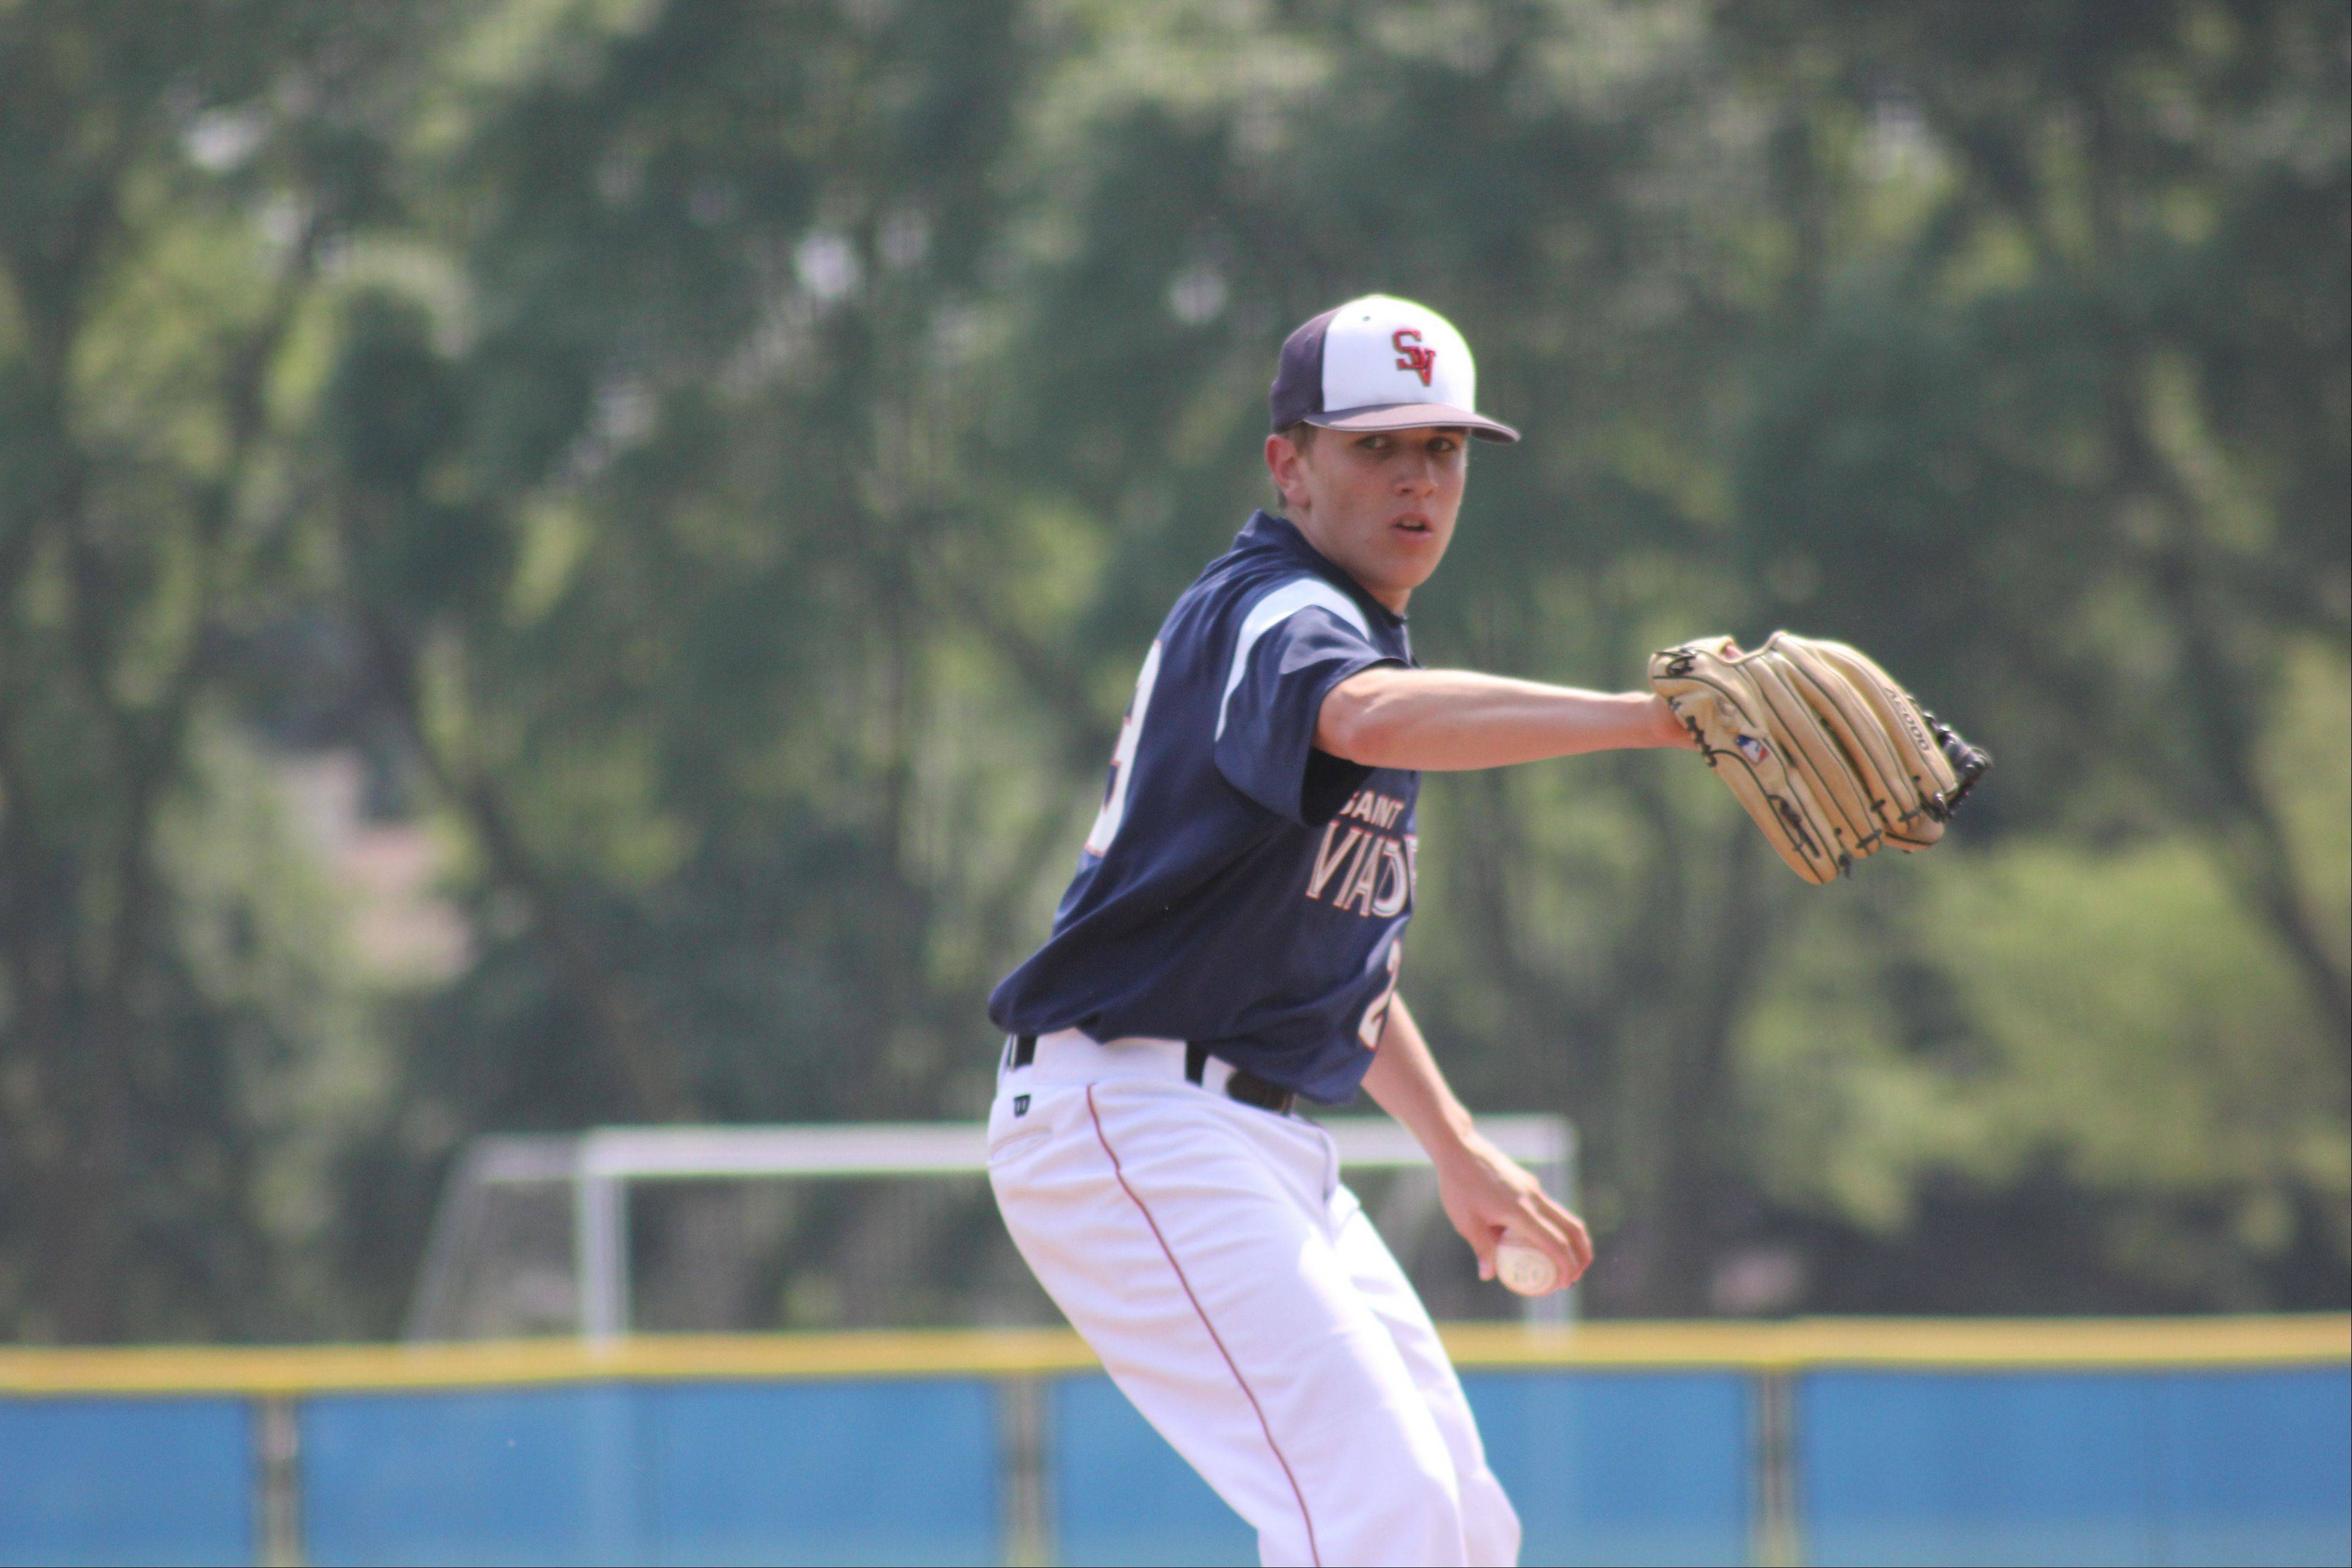 Hard work has led former St. Viator left-hander Bobby Napoleon to an opportunity to play baseball at Butler University.